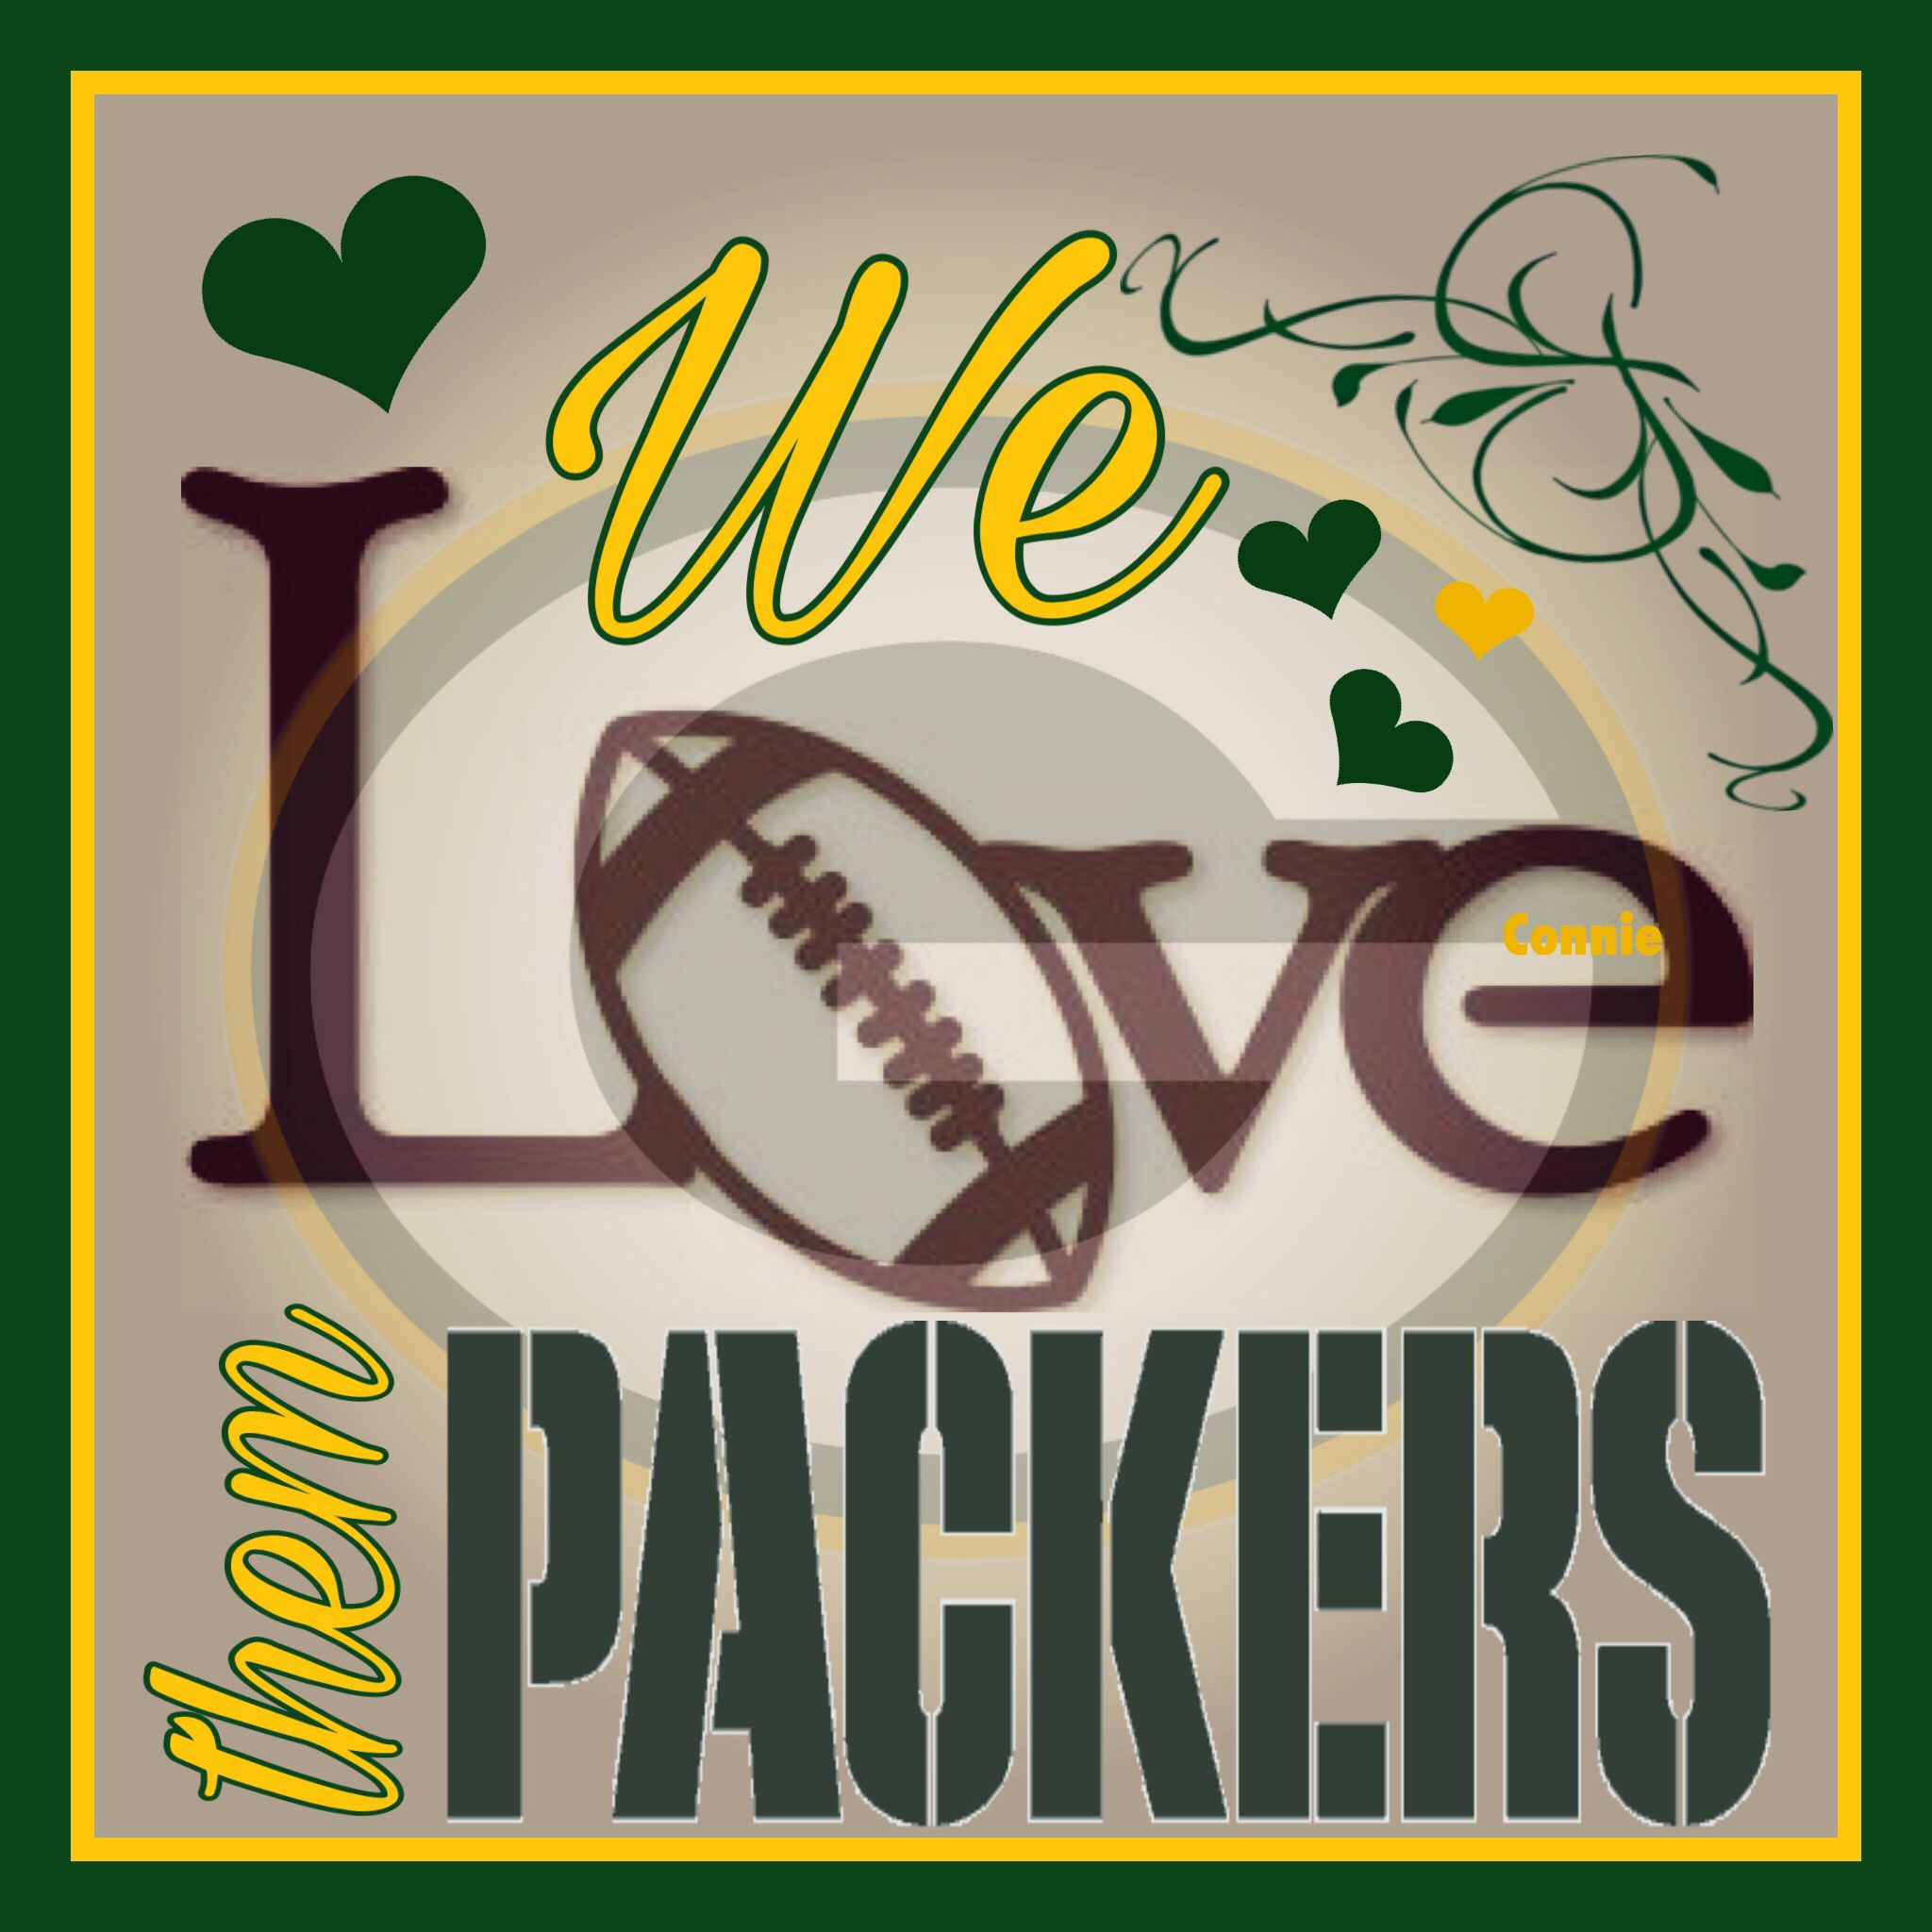 Packer Nation Sure Does Go Pack Go Green Bay Packers Football Green Bay Packers Green Bay Packers Aaron Rodgers